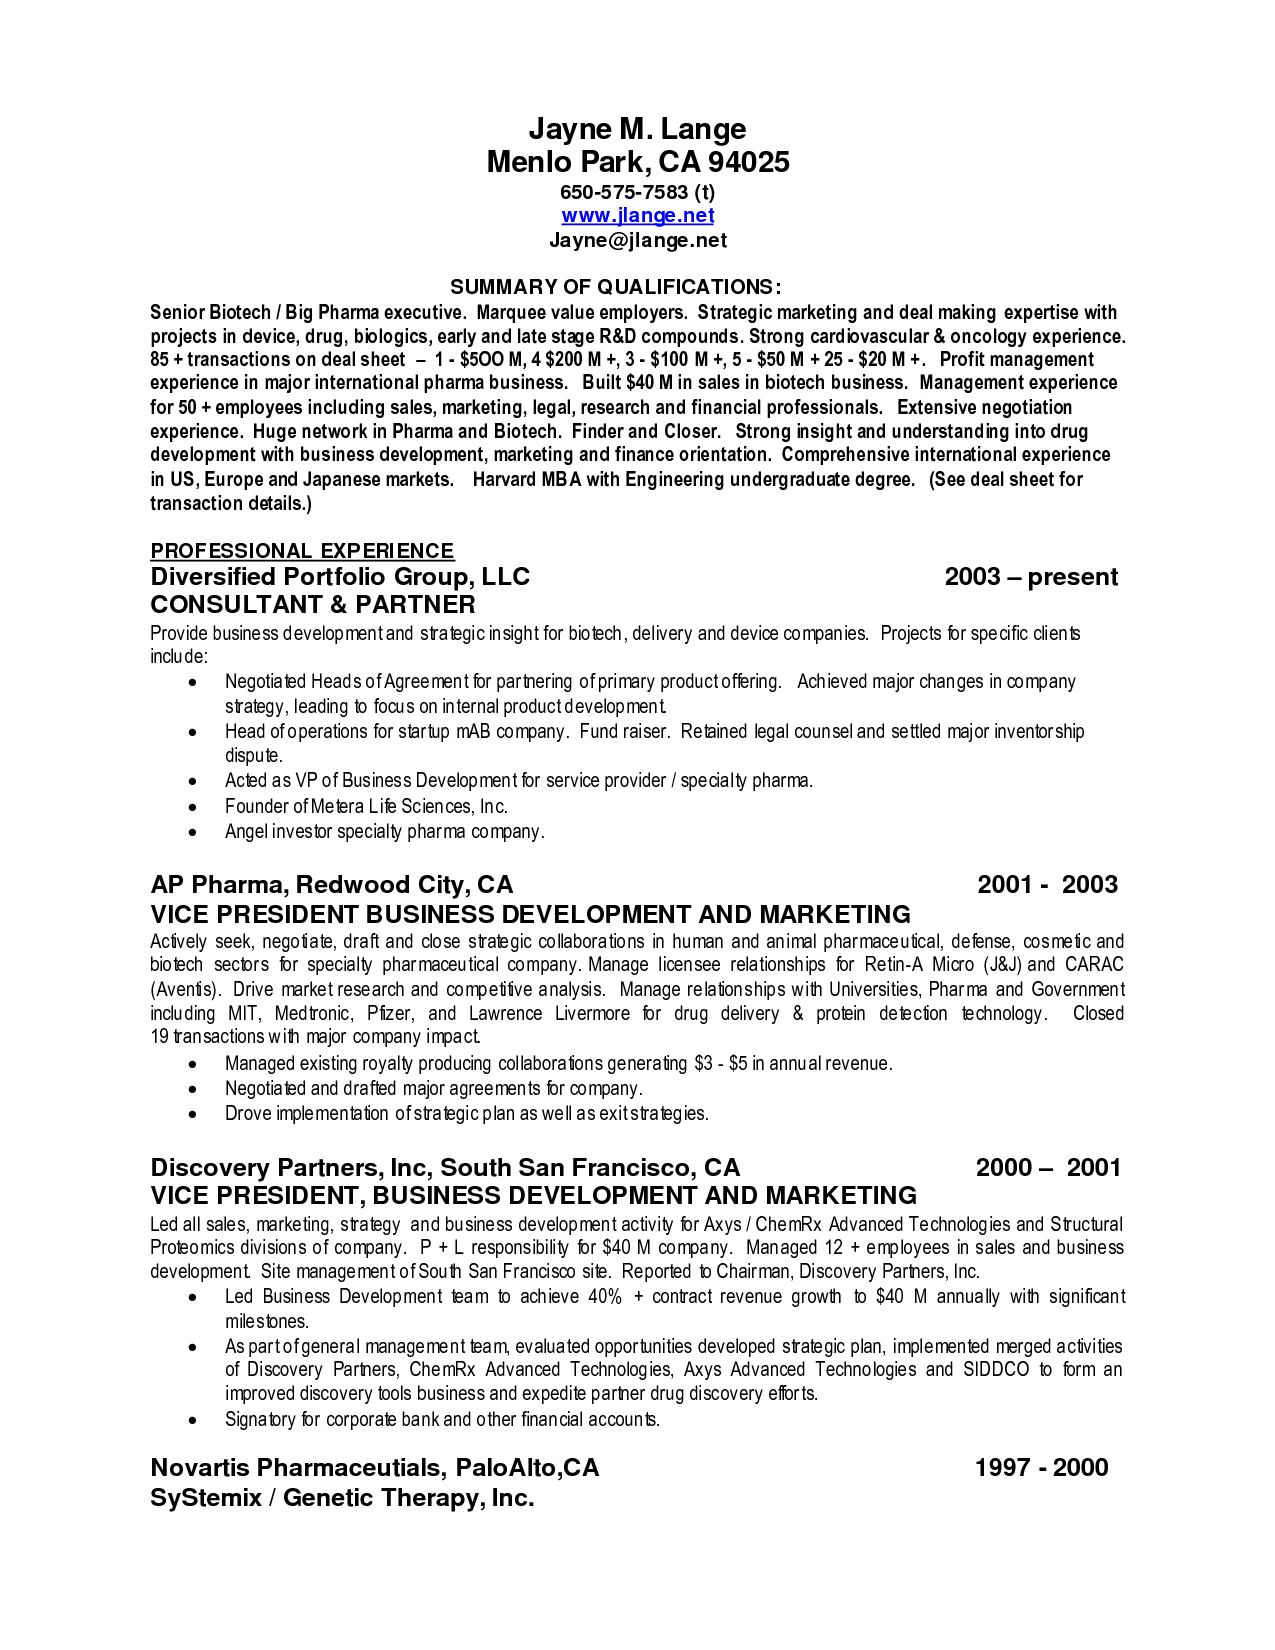 resume Summary Of Qualifications On A Resume sales resume summary of qualifications examples examples